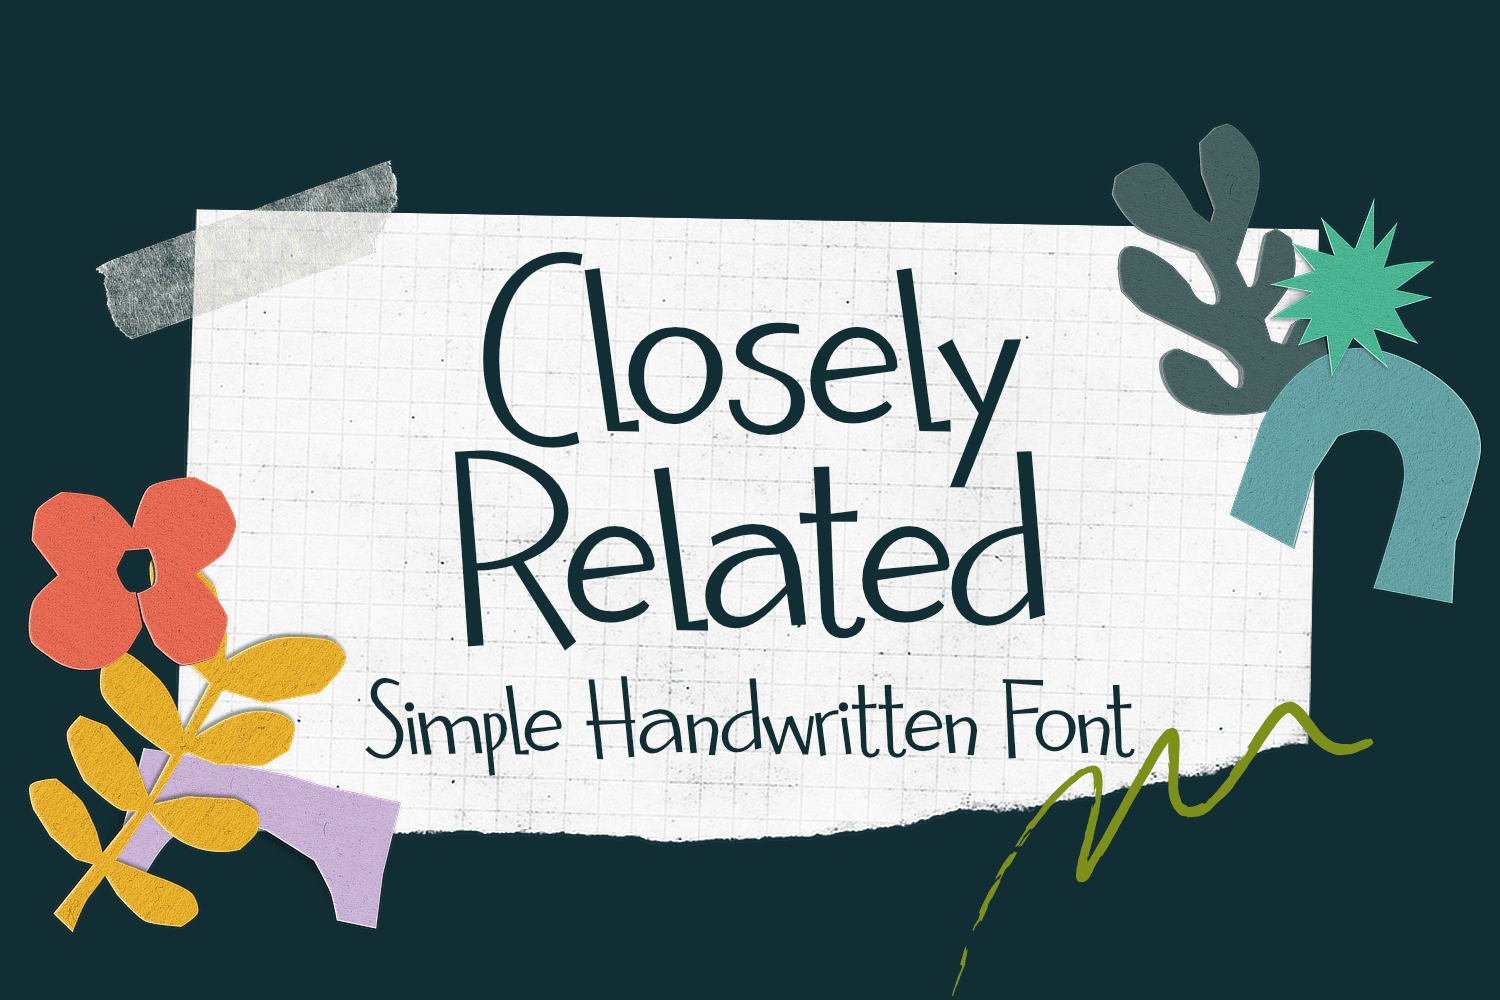 Closely Related Script Font